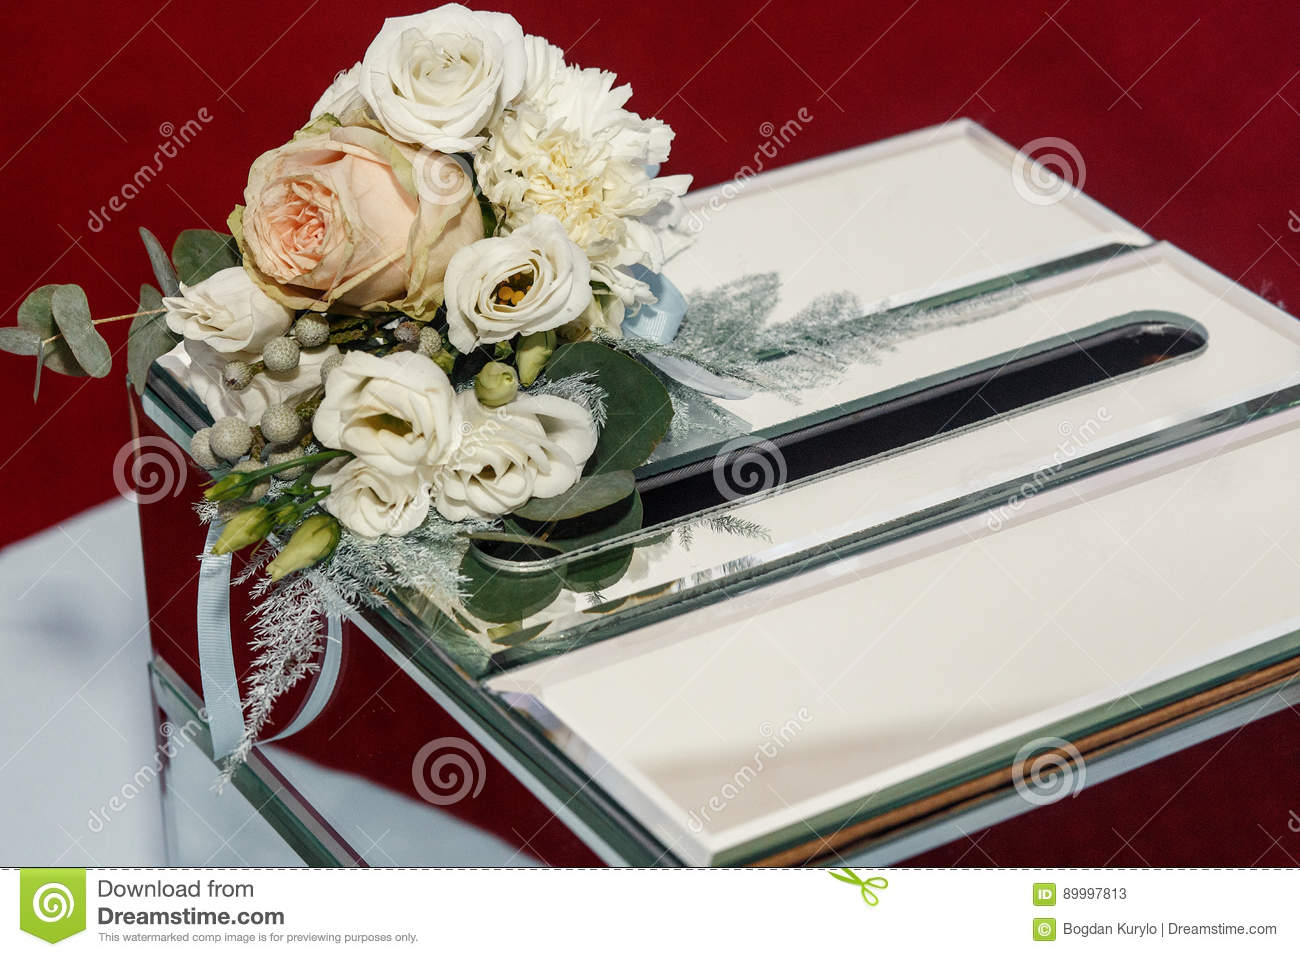 Luxury Wedding Gift Ideas: Luxury Wedding Gift Box With Roses And Expensive Golden